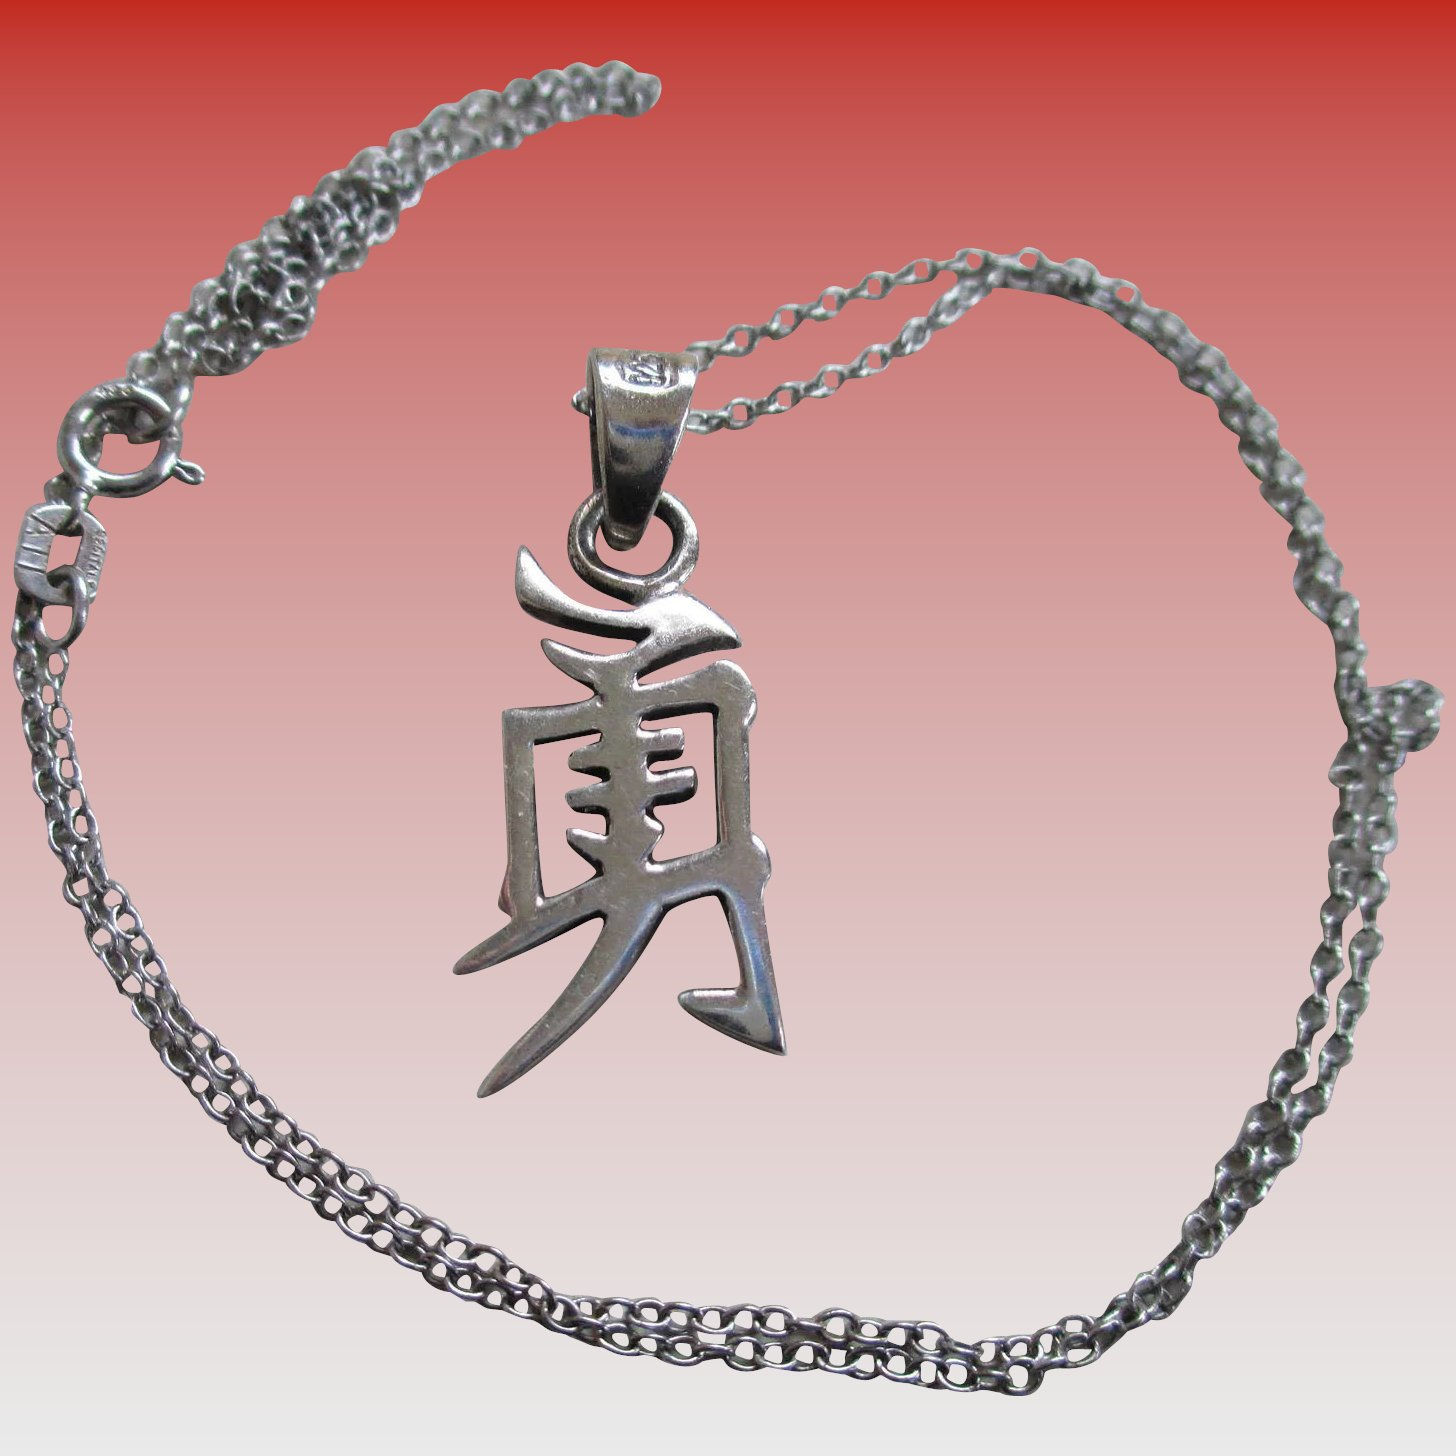 Vintage 925silver chinese symbol courage necklace silvermoon chinese symbol courage necklace click to expand biocorpaavc Image collections